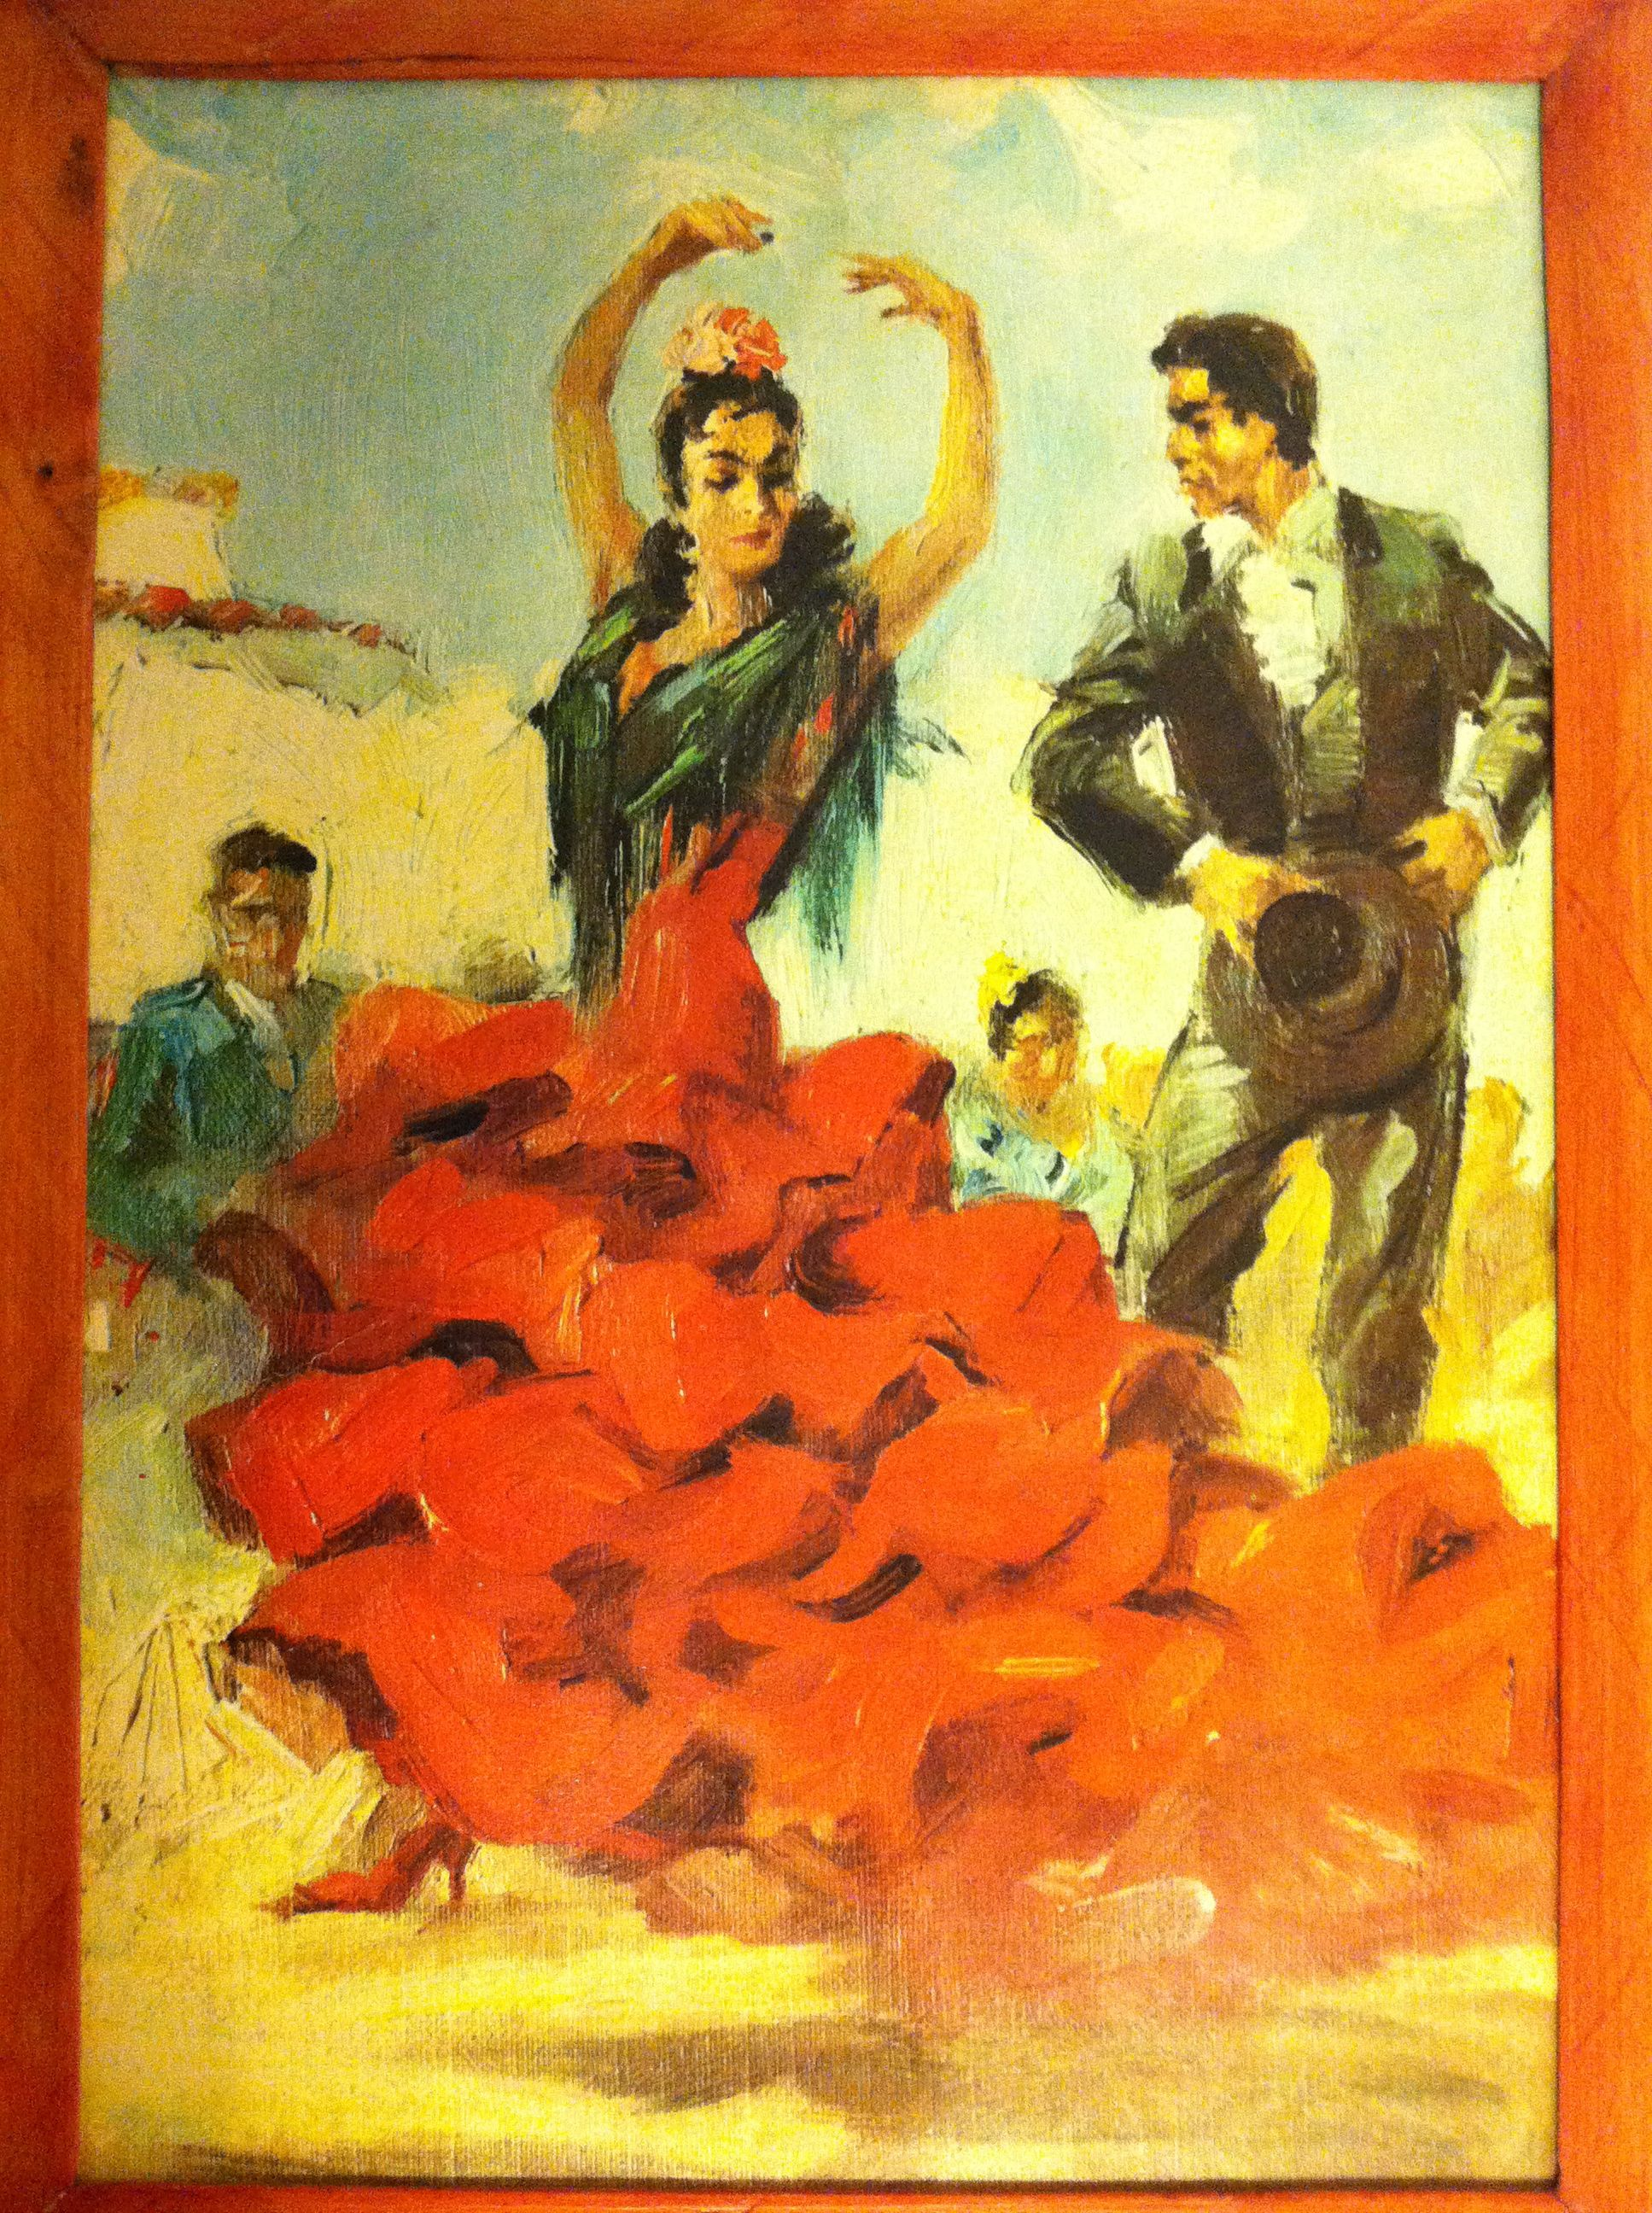 Gipsy Dancers, a painting I found tucked way back in a